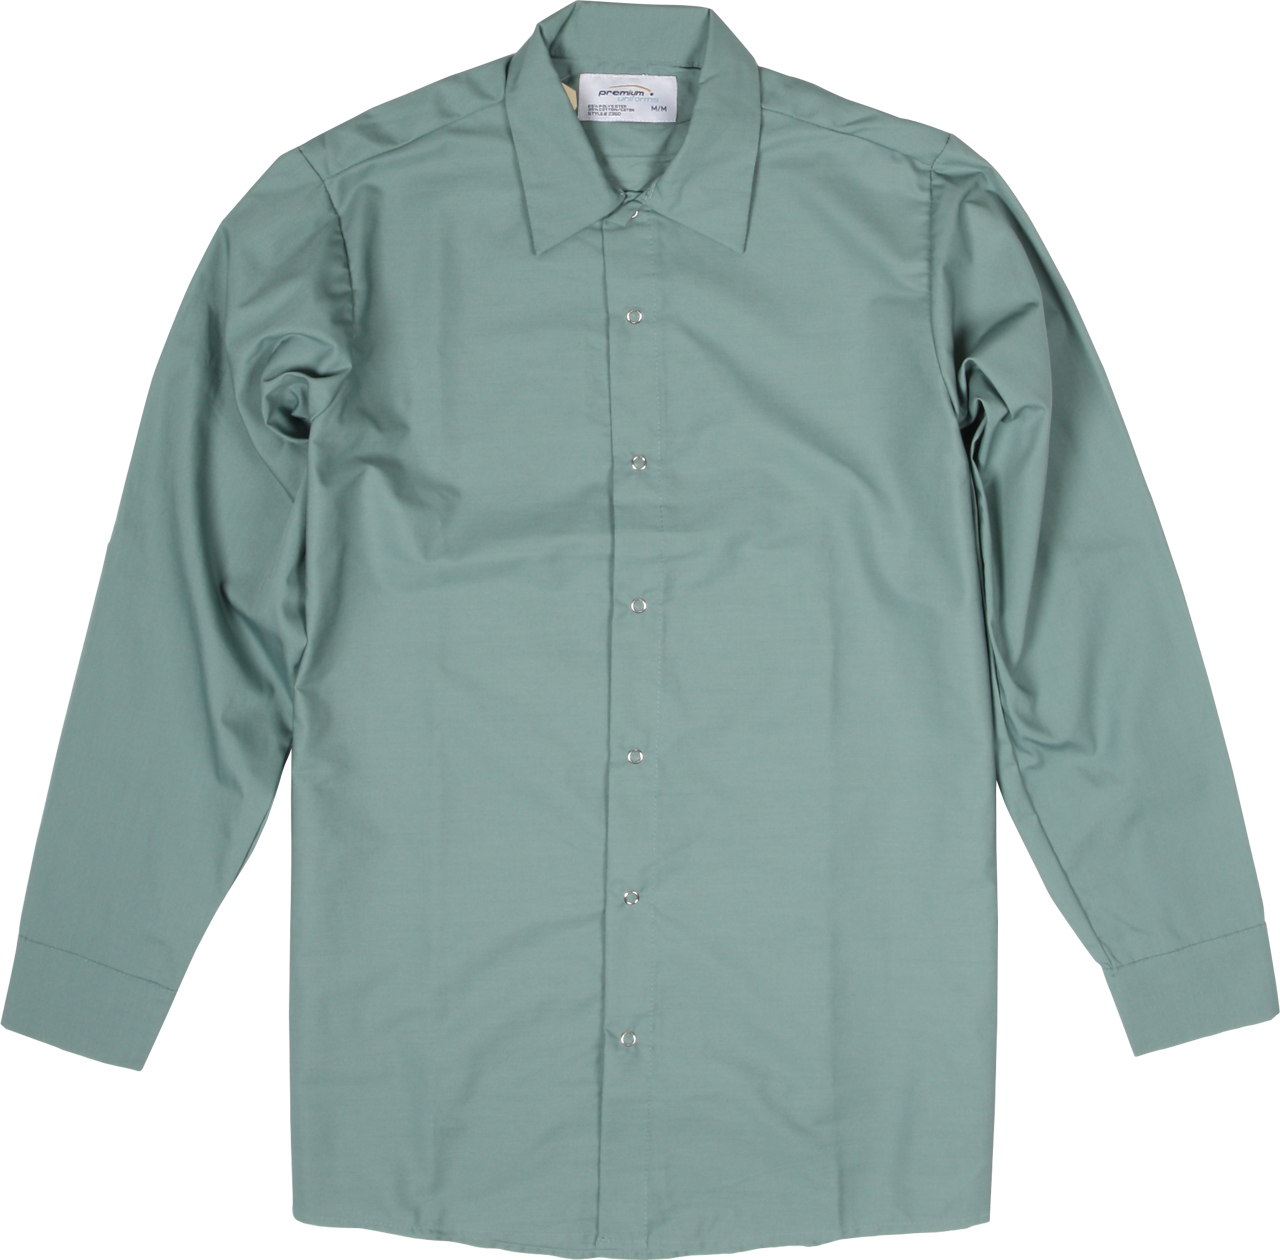 Picture of Premium Uniforms Food Industry Long Sleeve Shirt